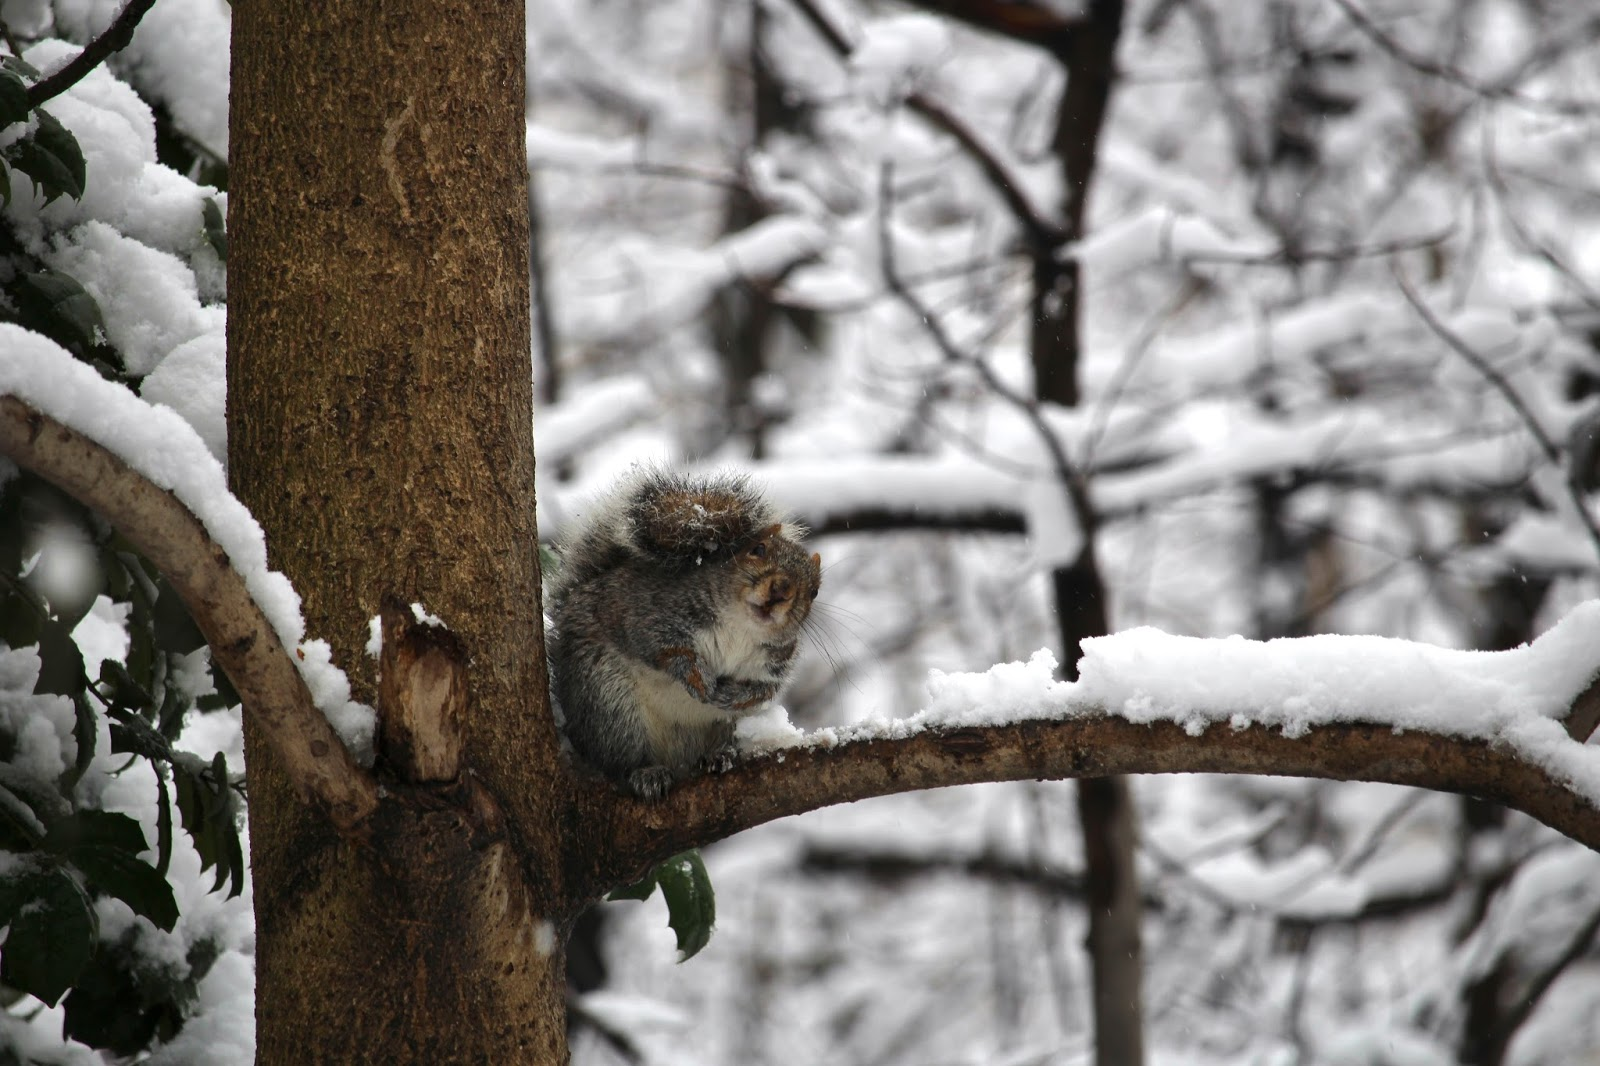 Cheeky squirrel poses in the snow